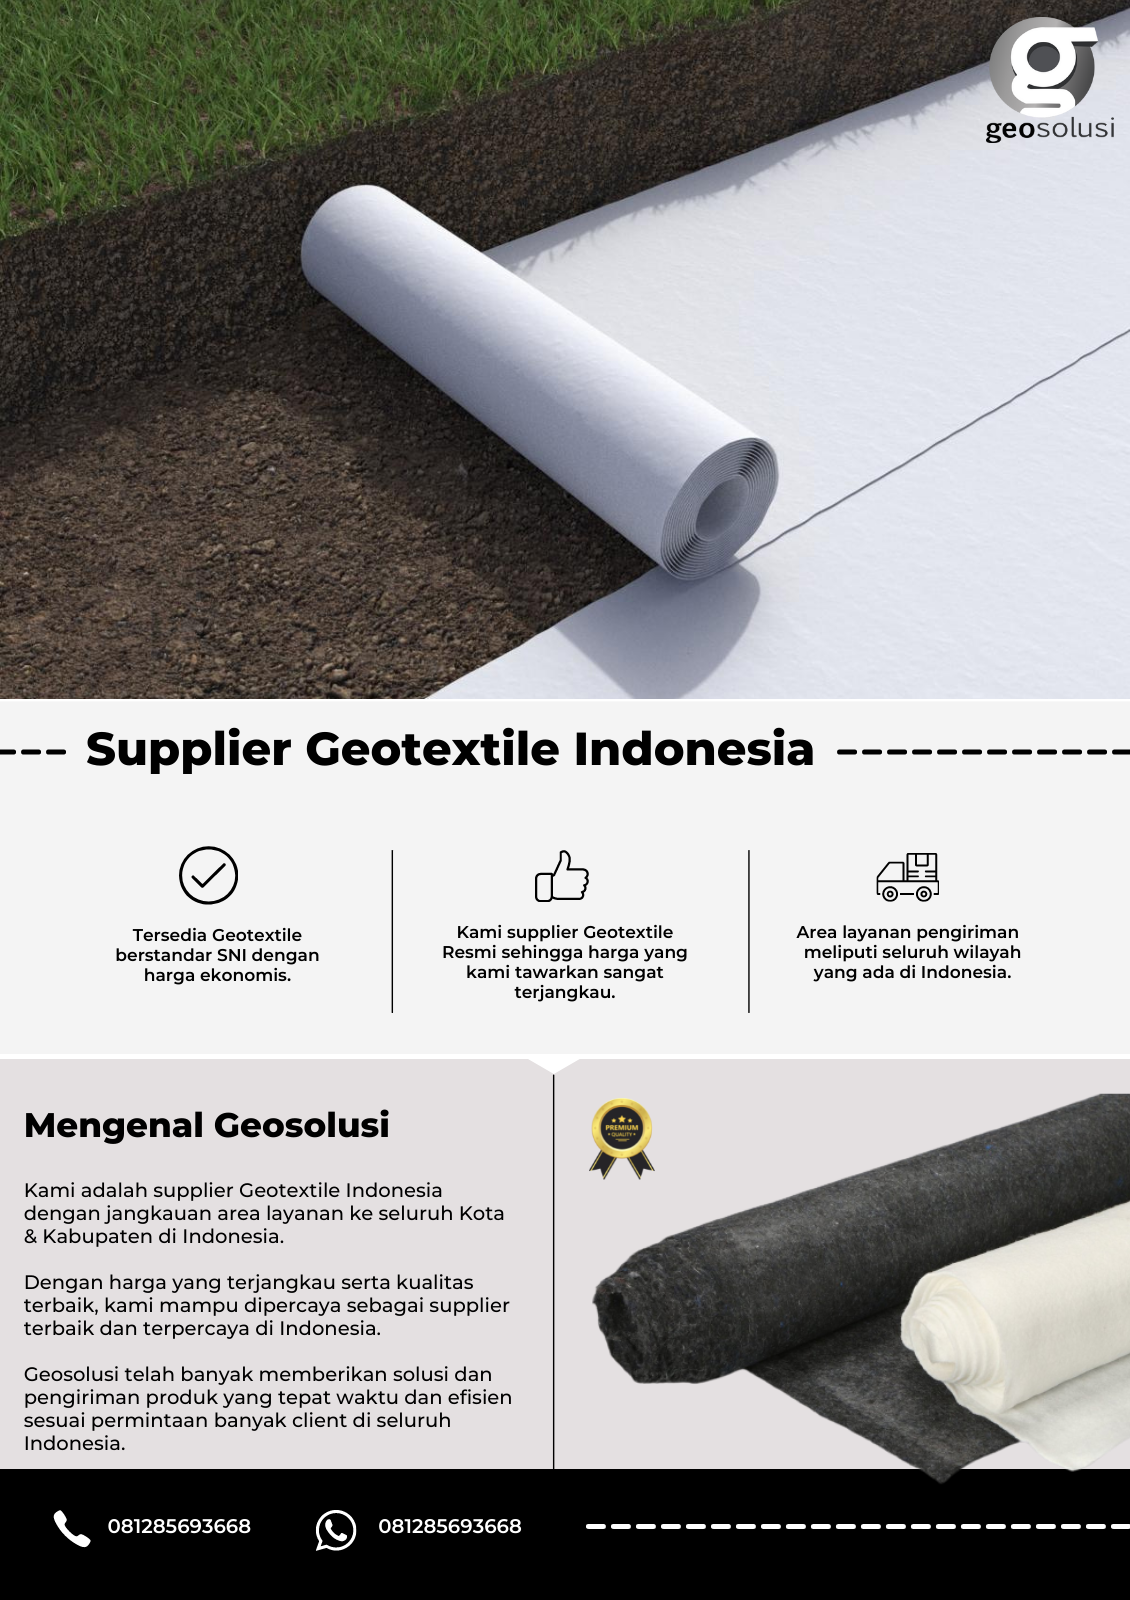 Supplier Geotextile Indonesia.